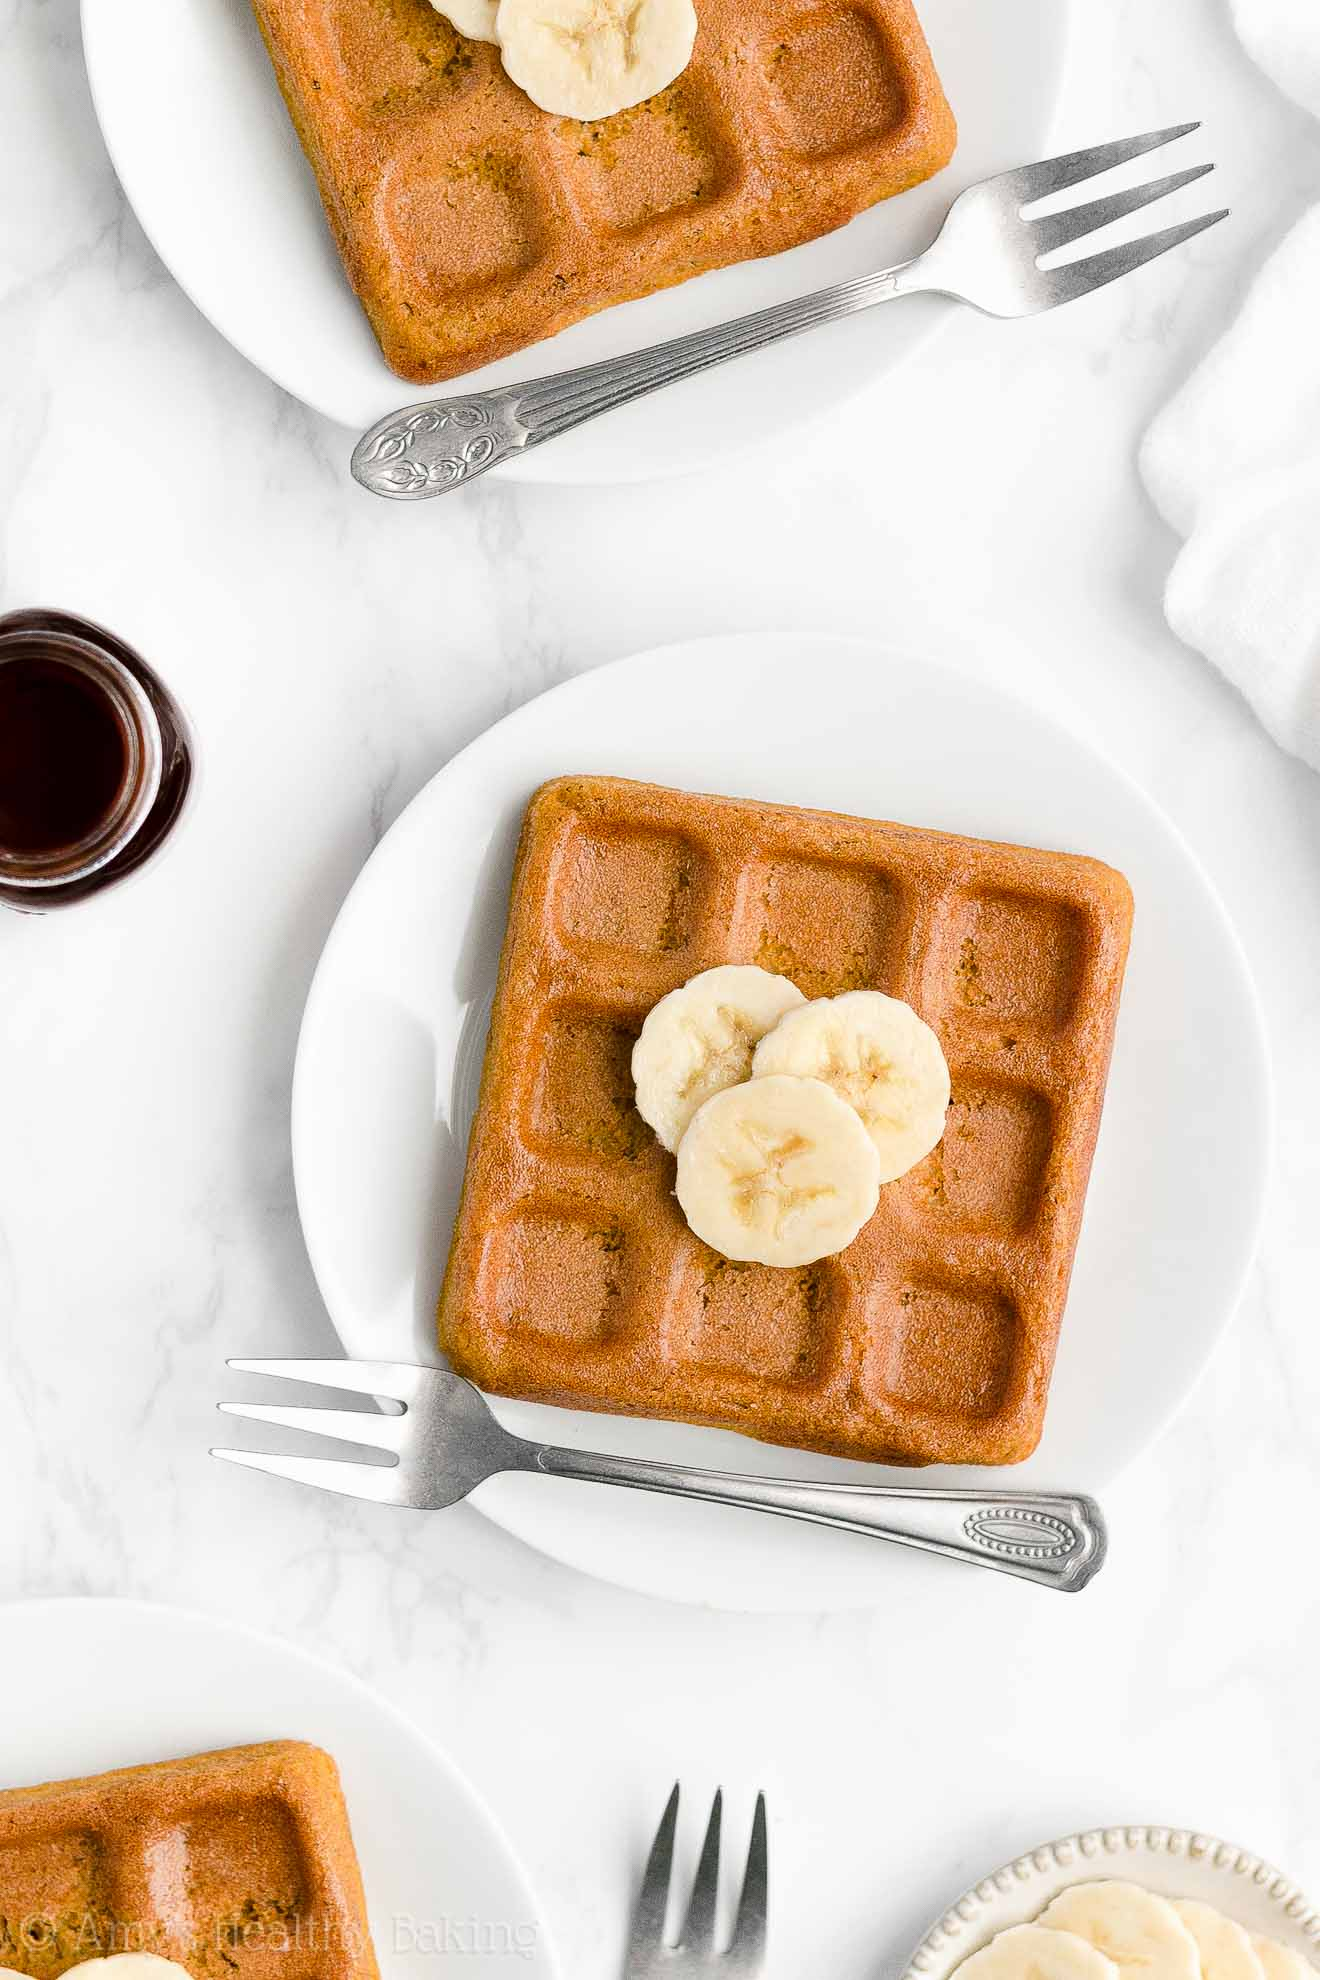 Best Easy Healthy Gluten Free Sugar Free Low Calorie Crispy Banana Waffles